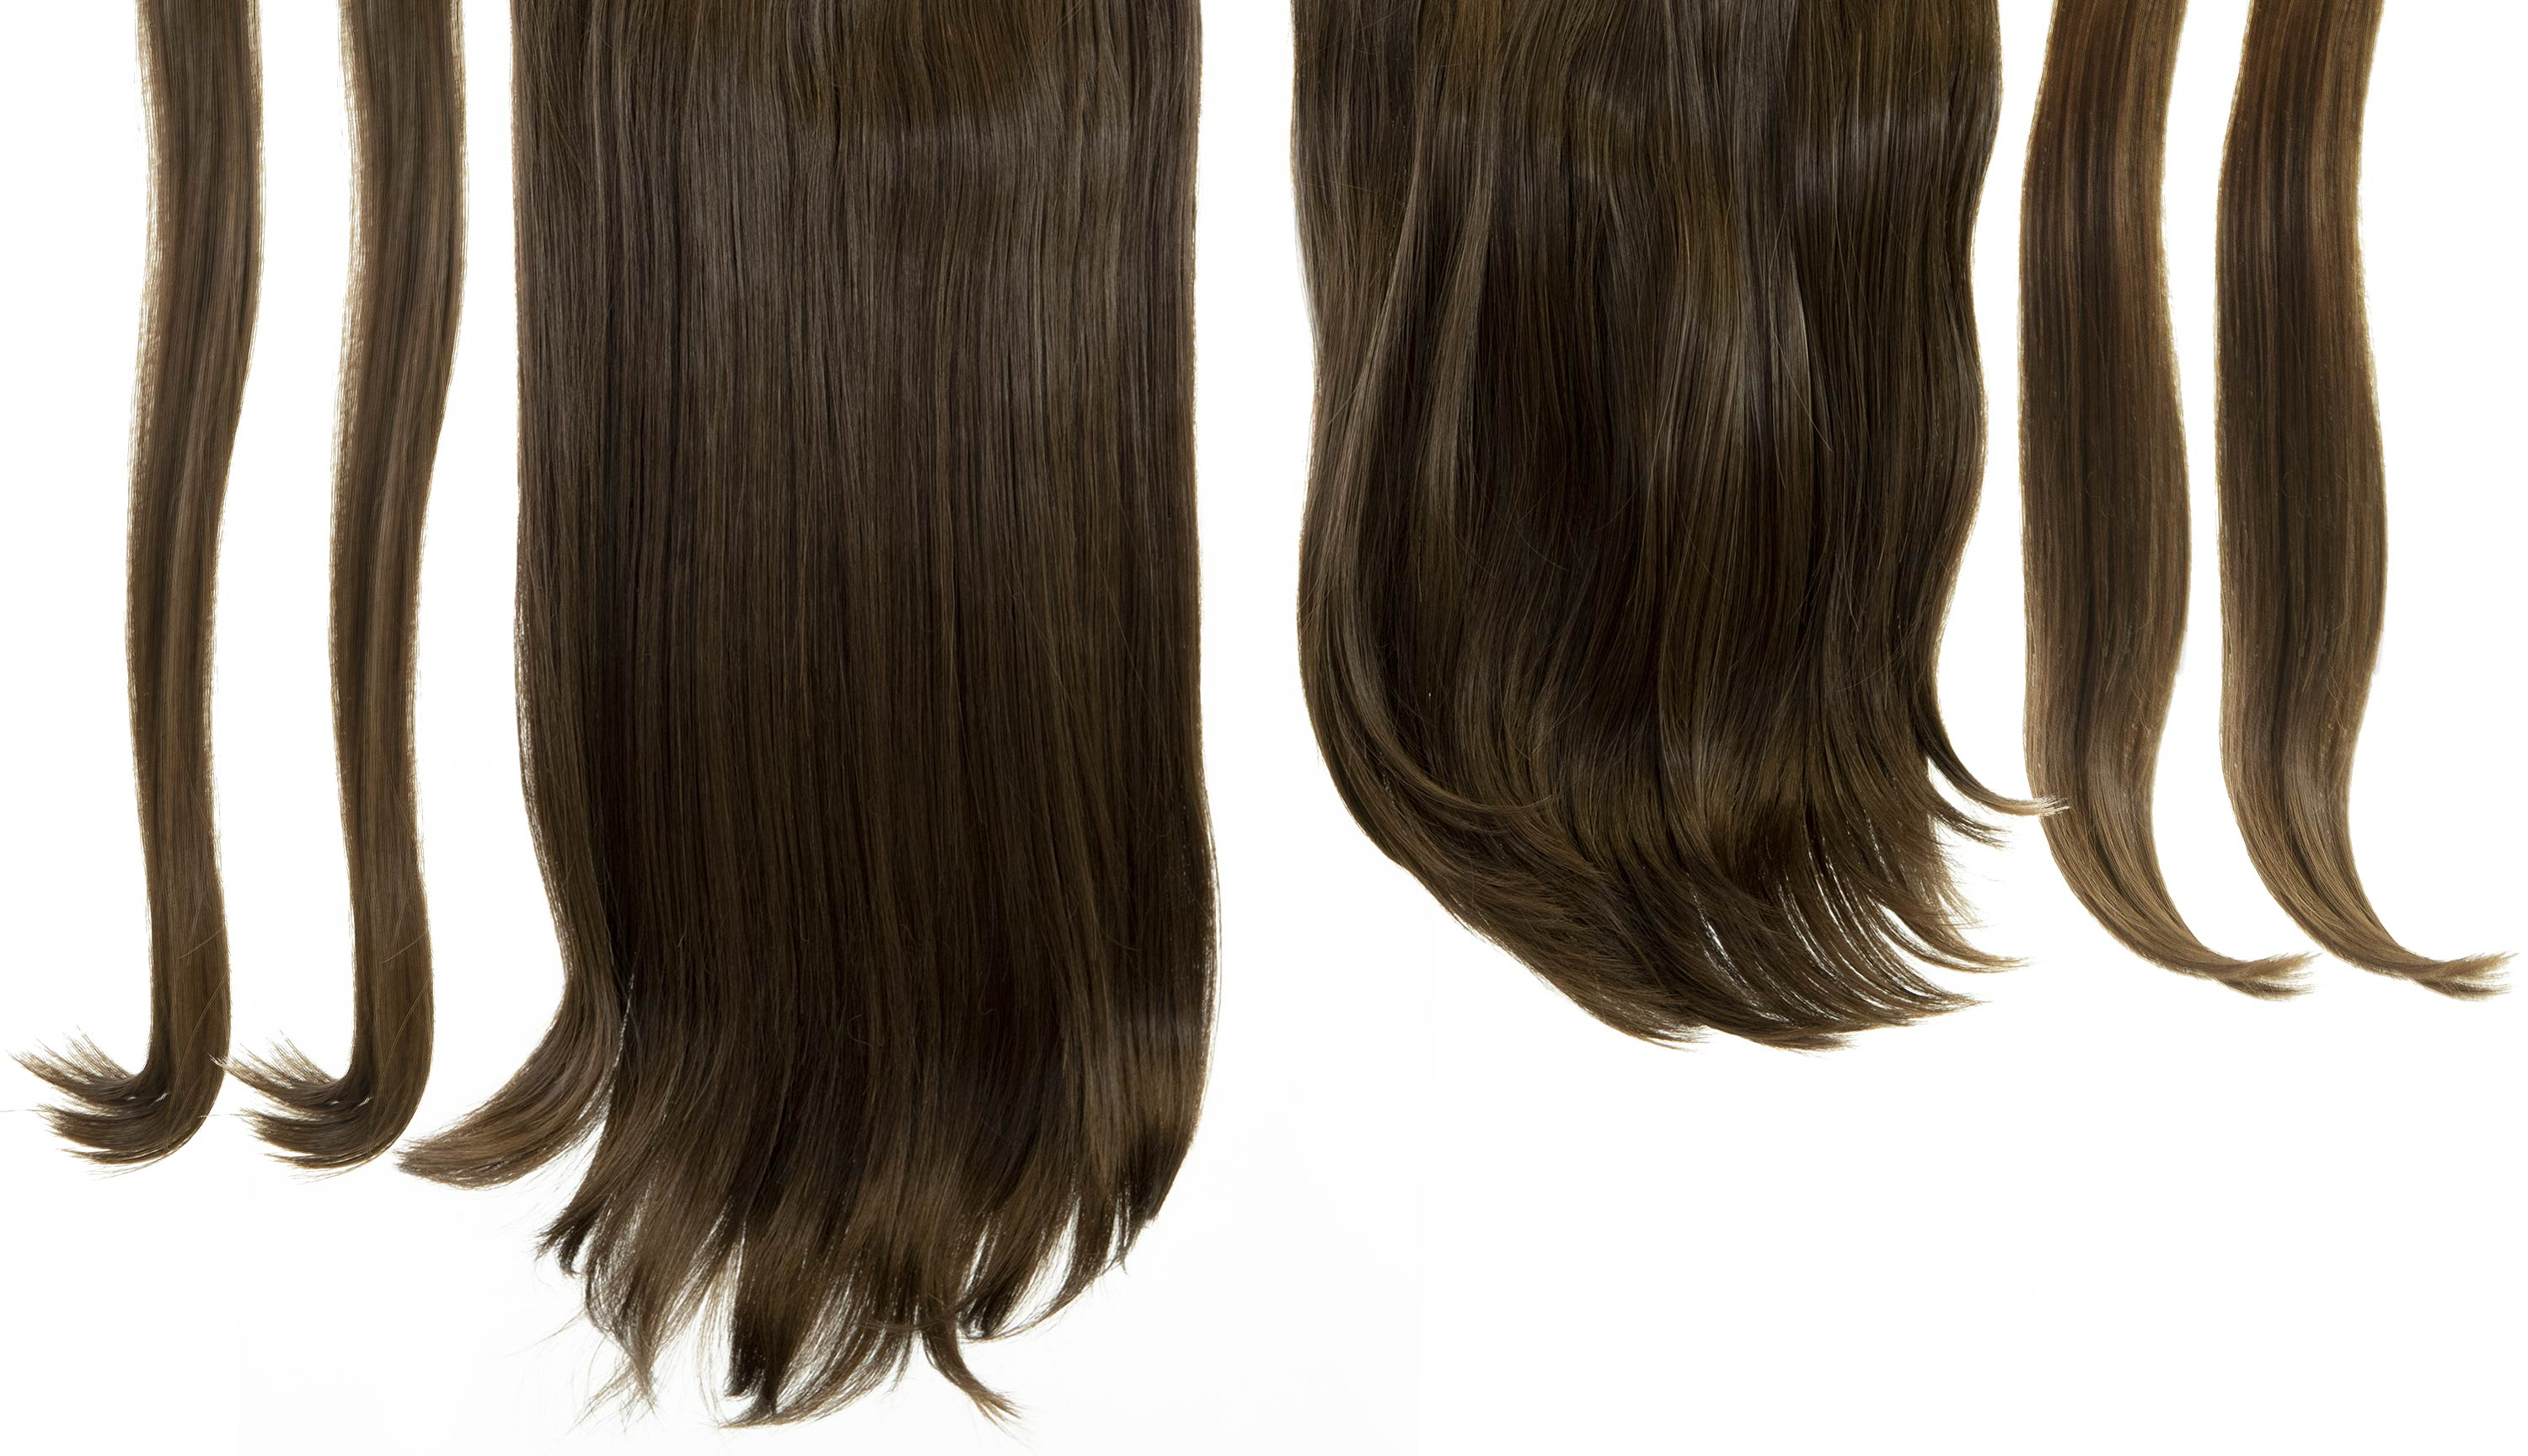 6 in 1 Clip In Hair Extensions - Brown Cocoa